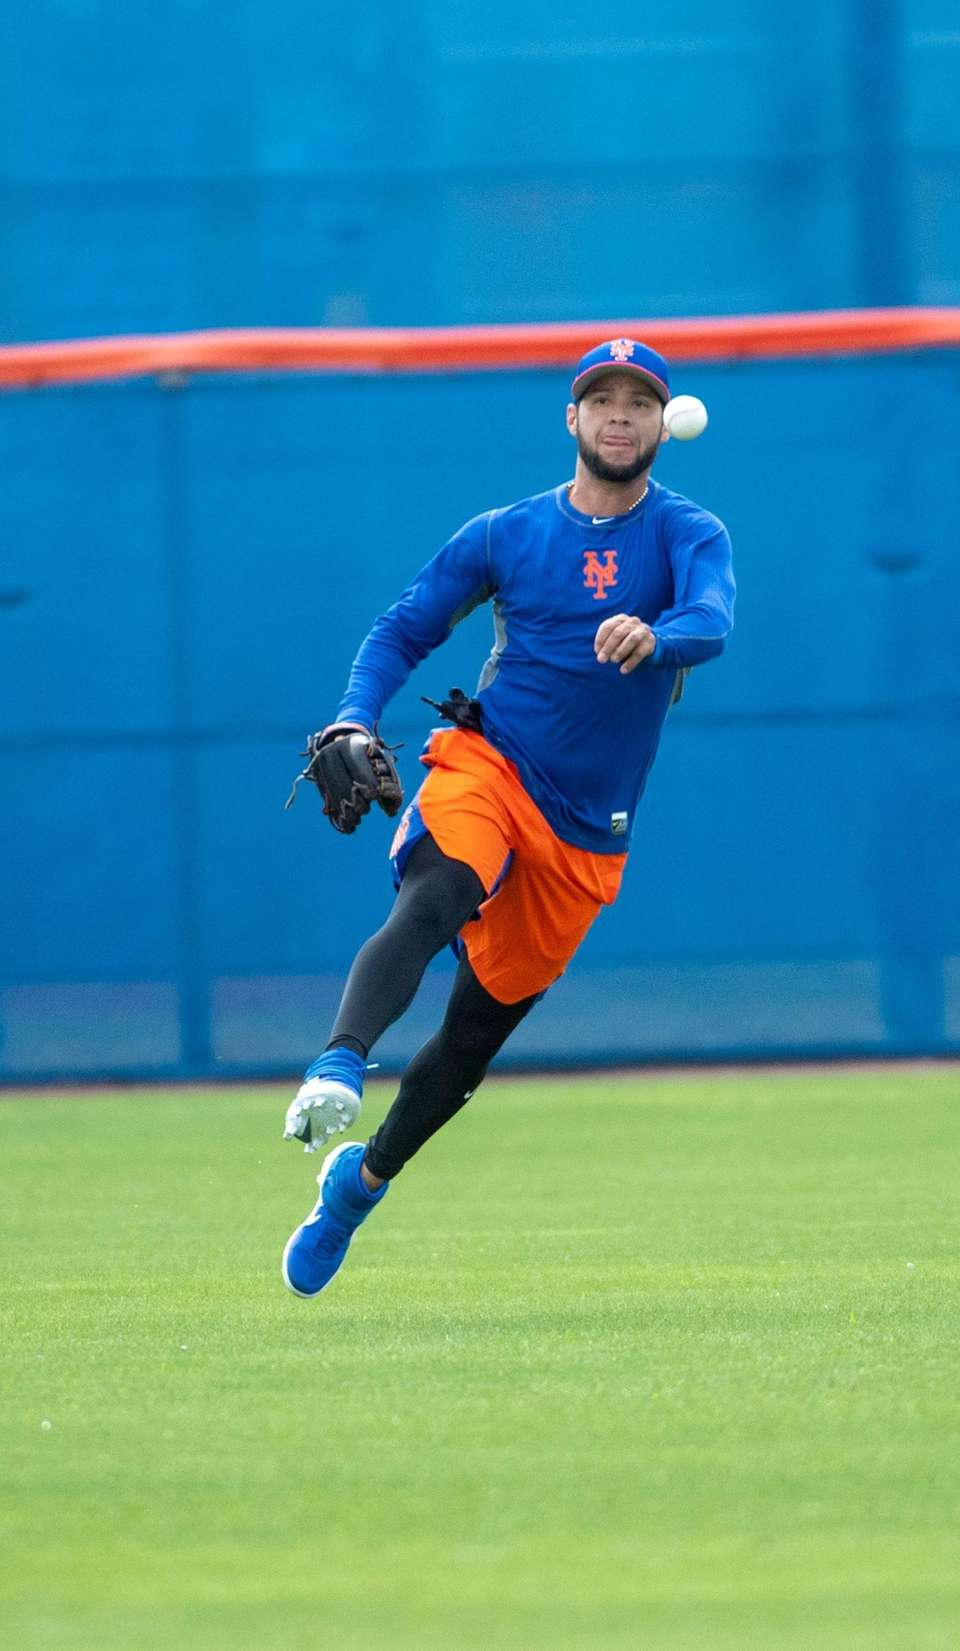 New York Mets player Gregor Blanco during a